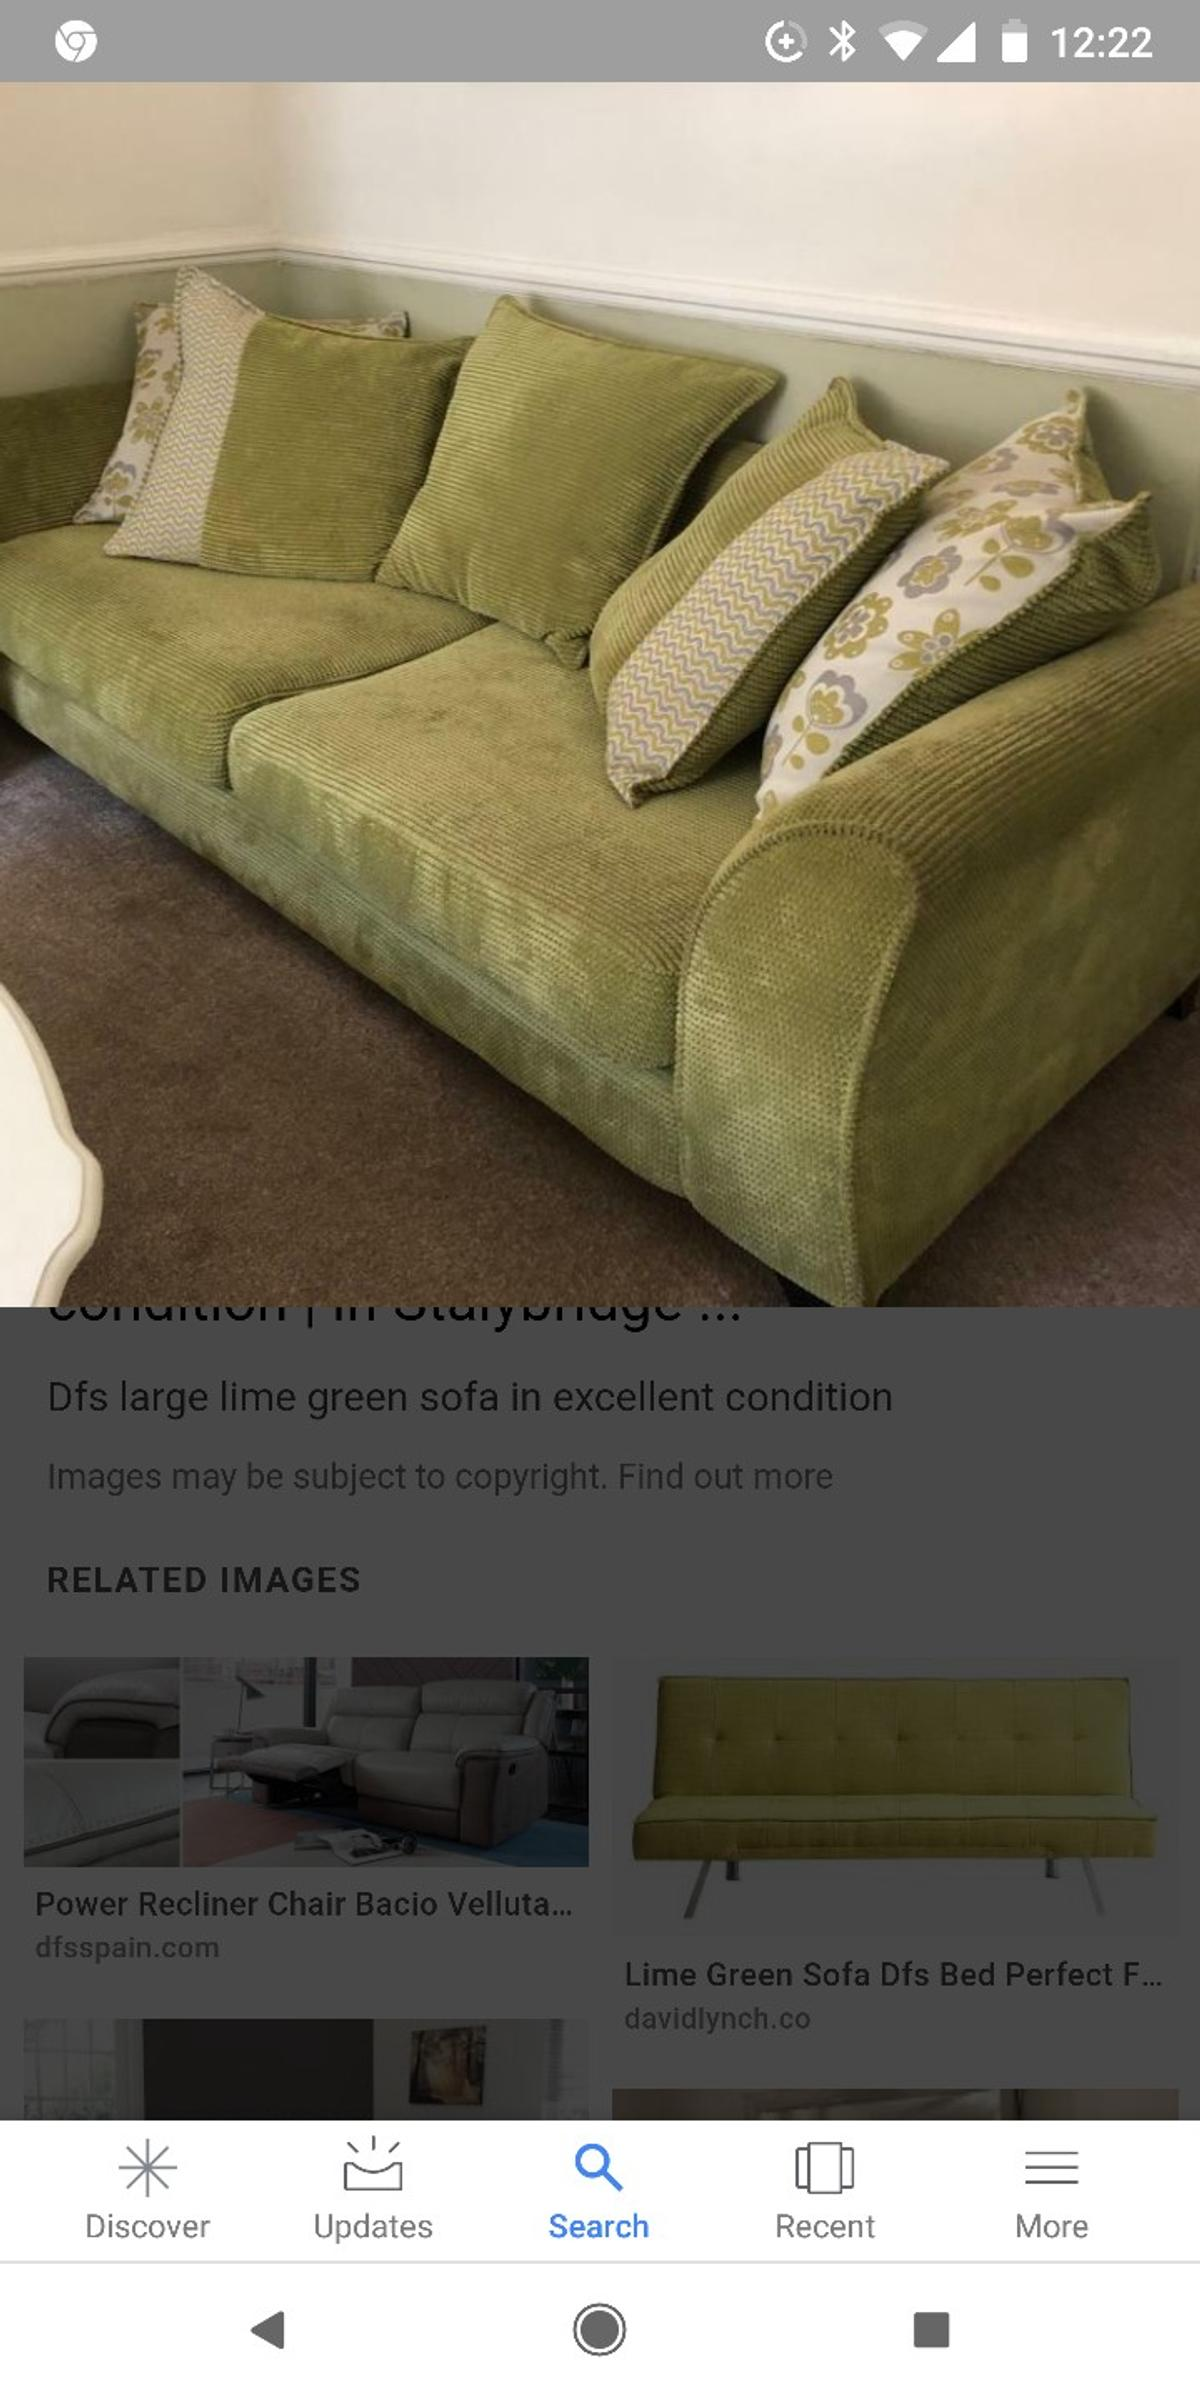 Dfs Lime Green Sofa In Rm19 Purfleet For 30 00 For Sale Shpock